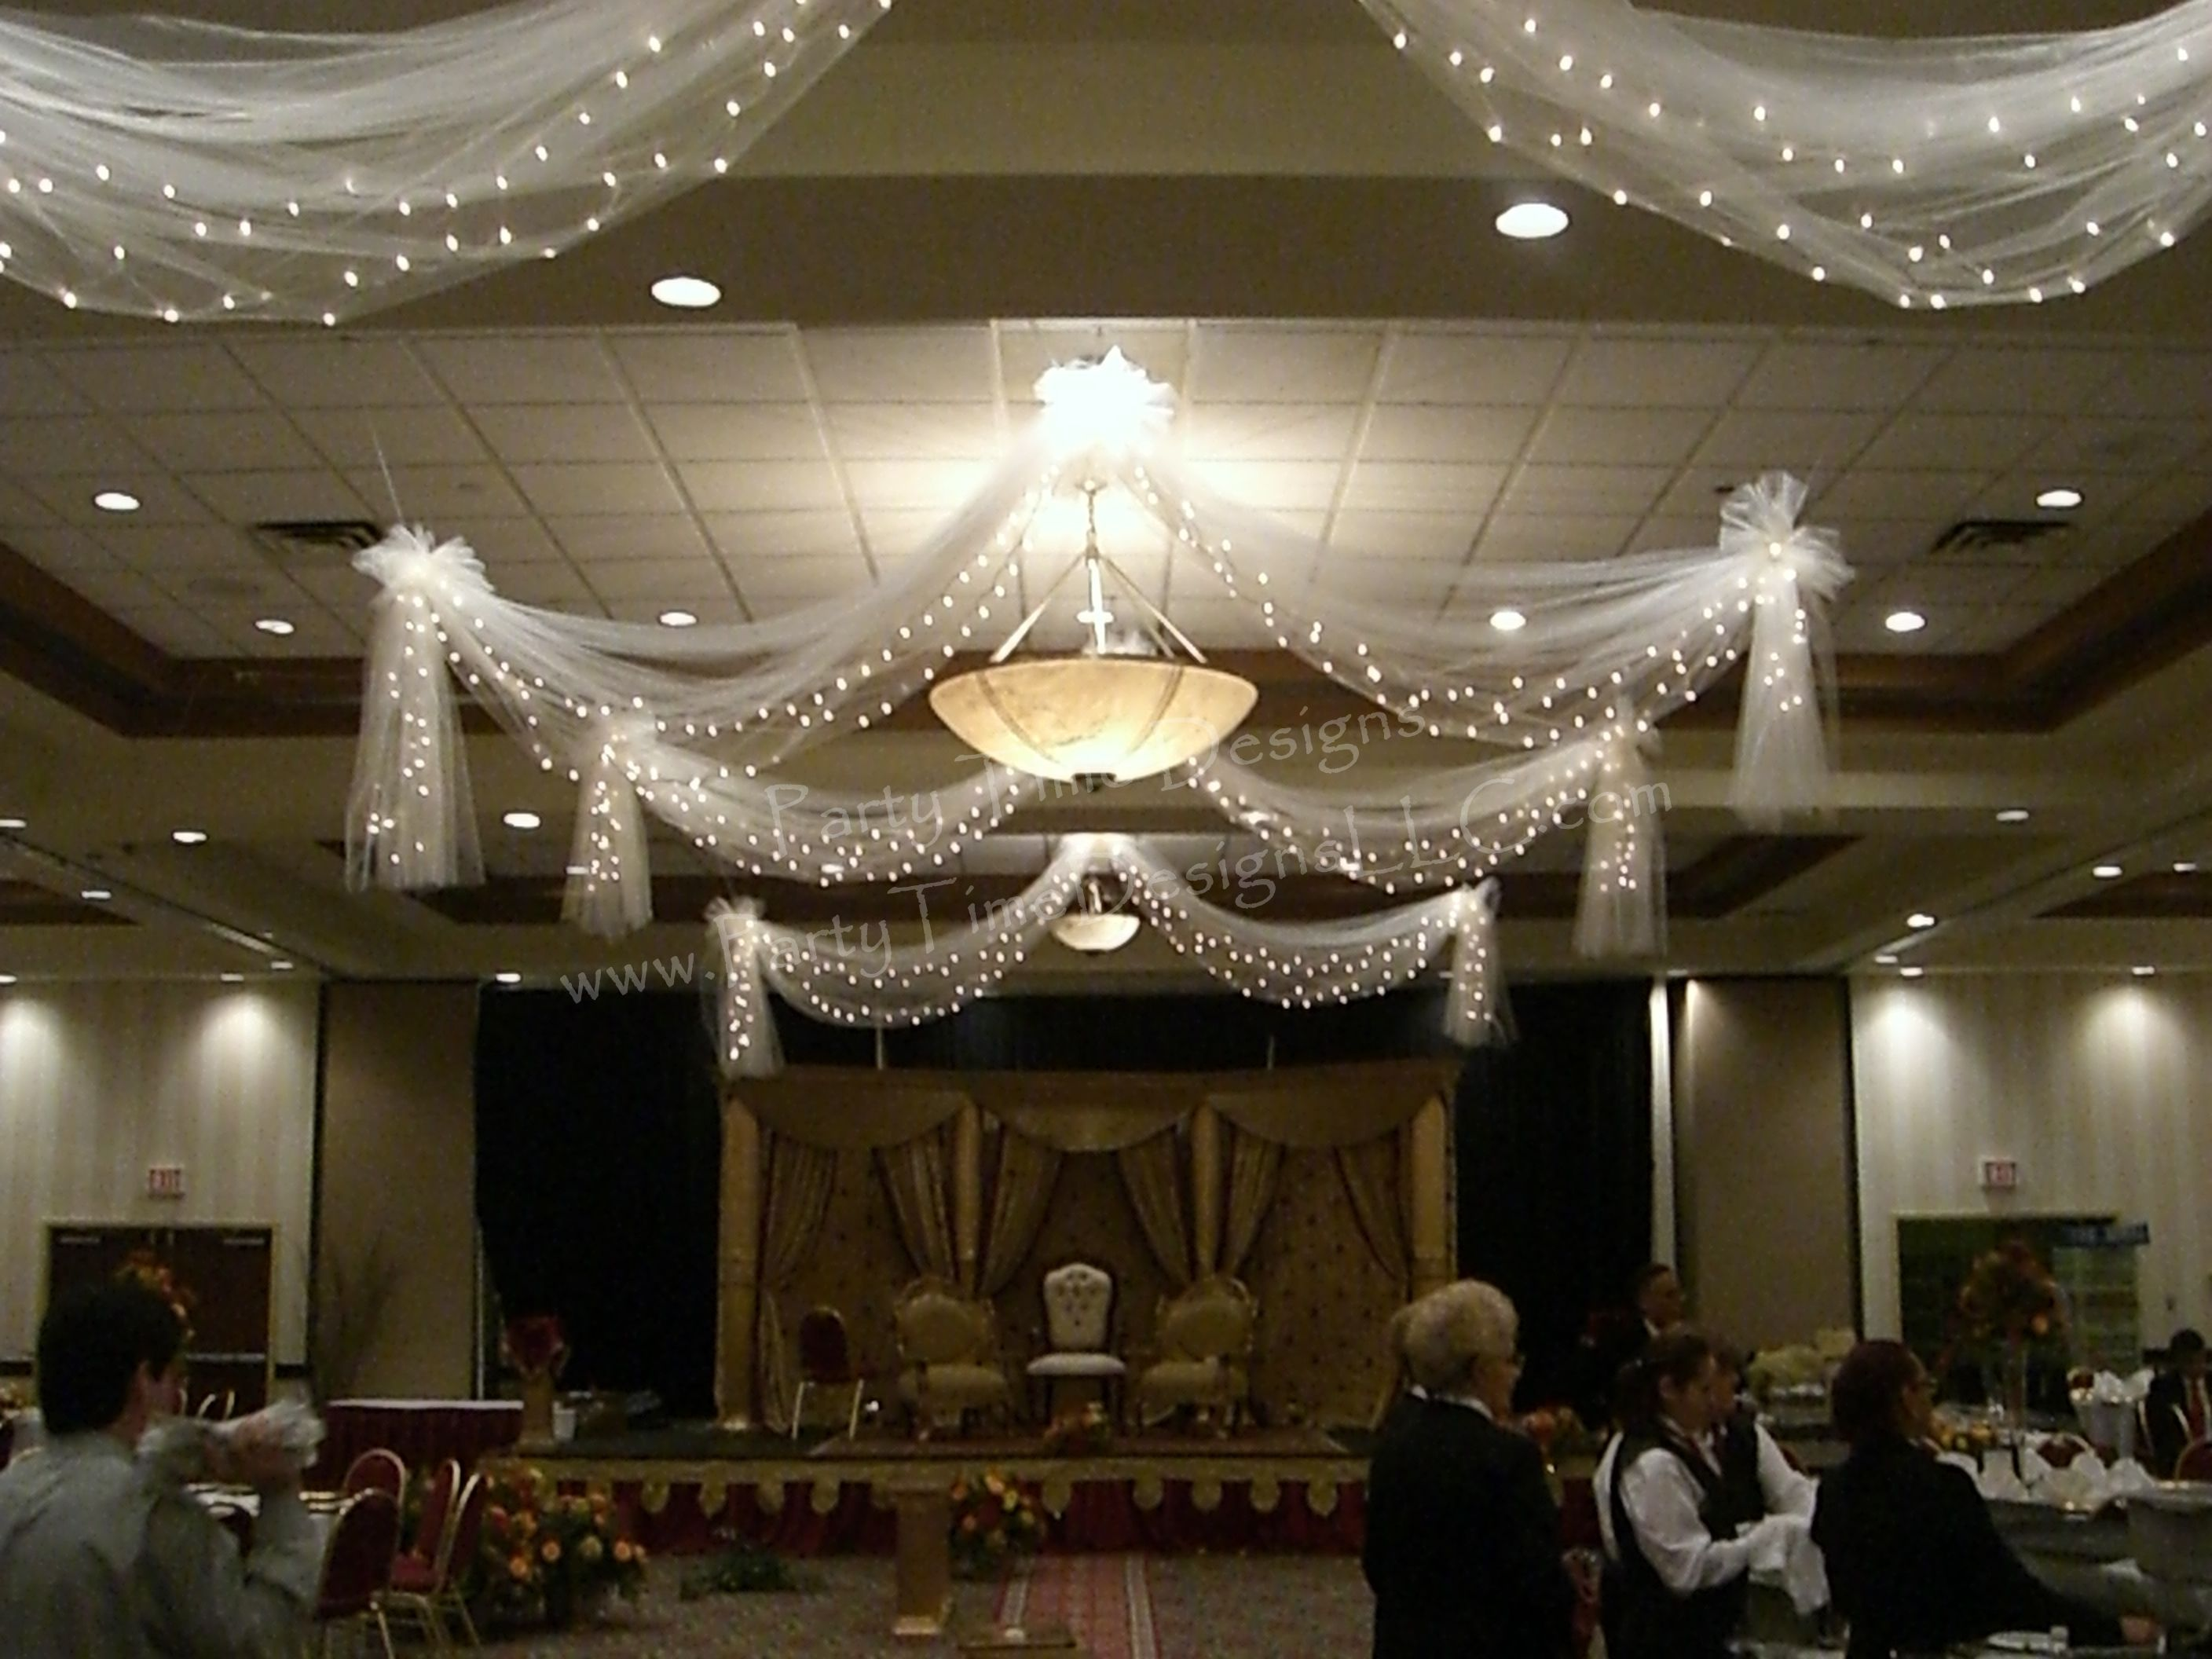 Swag Tulle Draping w/ Lights & Swag Tulle Draping w/ Lights | Tulle Draping | Pinterest ... azcodes.com